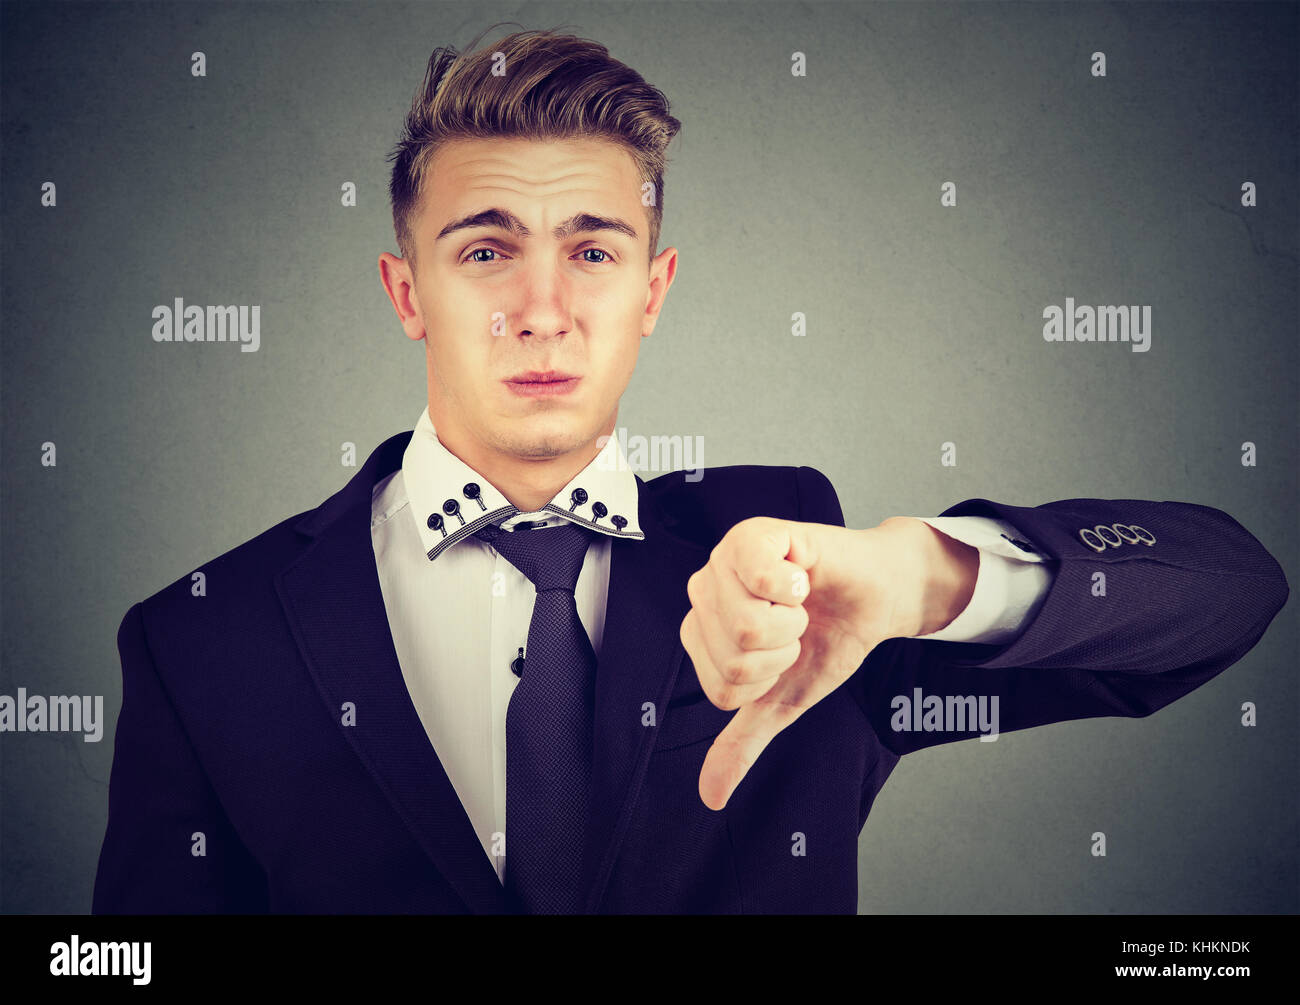 Angry disappointed young business man showing thumbs down sign, in disapproval isolated on gray background. Negative - Stock Image